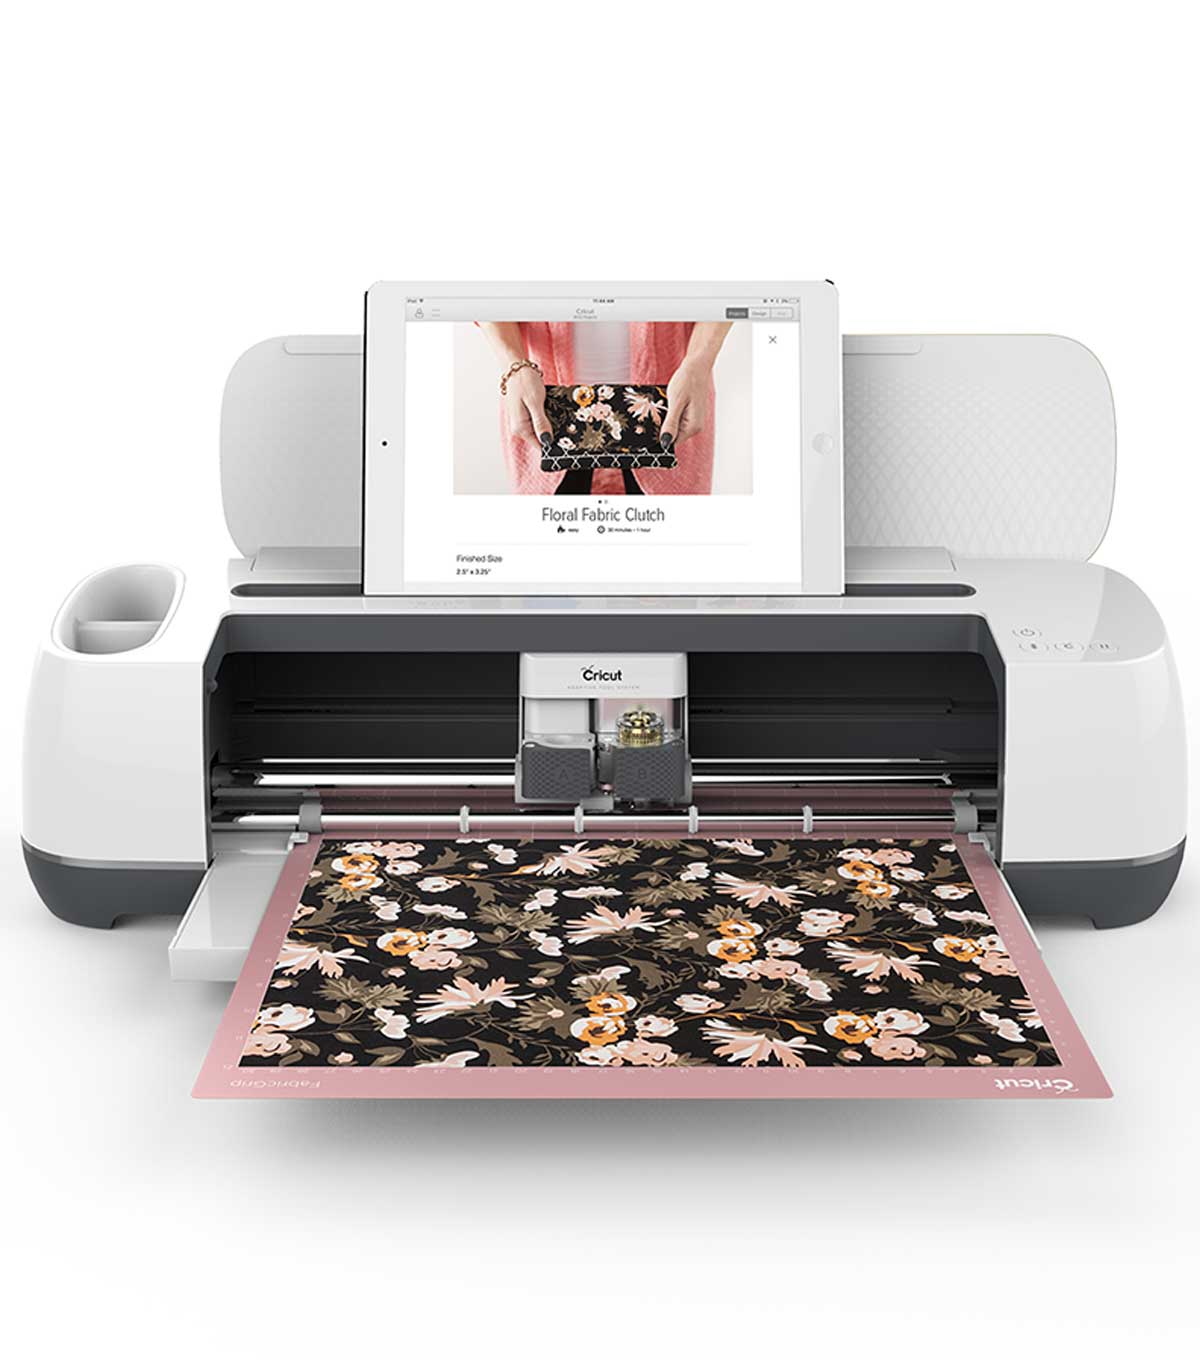 Meet the Cricut Ultimate Maker!